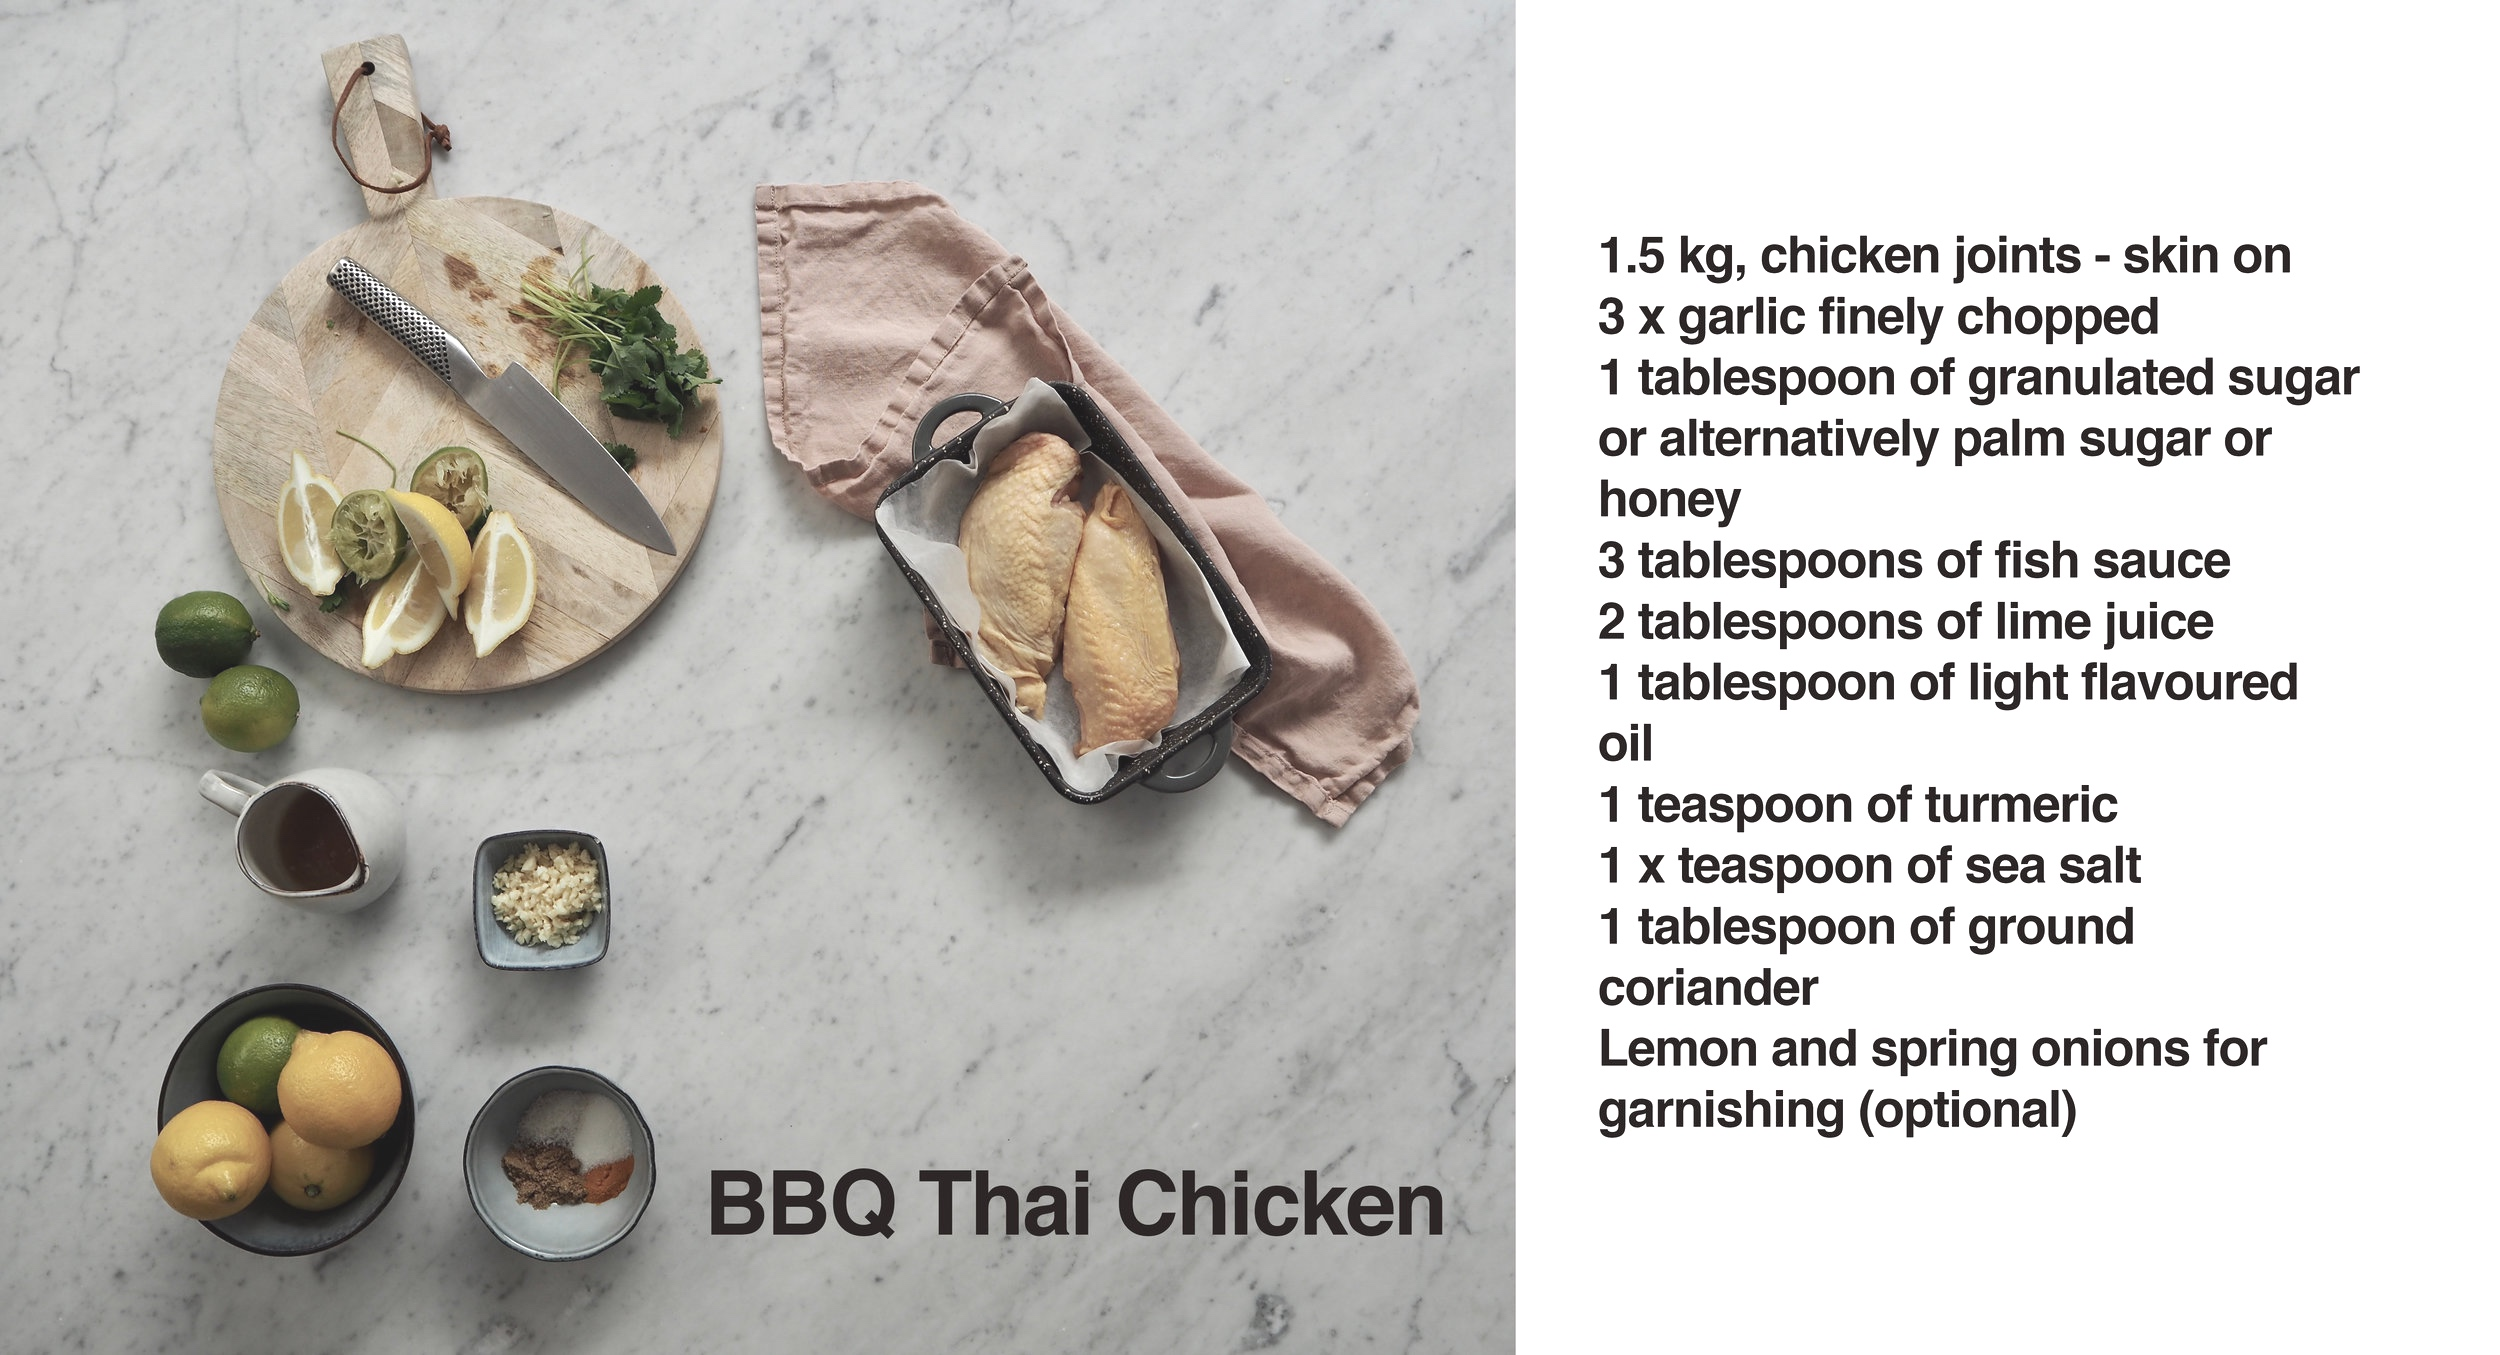 BBQ+THAI+CHICKEN+ORIGINAL+IMAGE.jpg